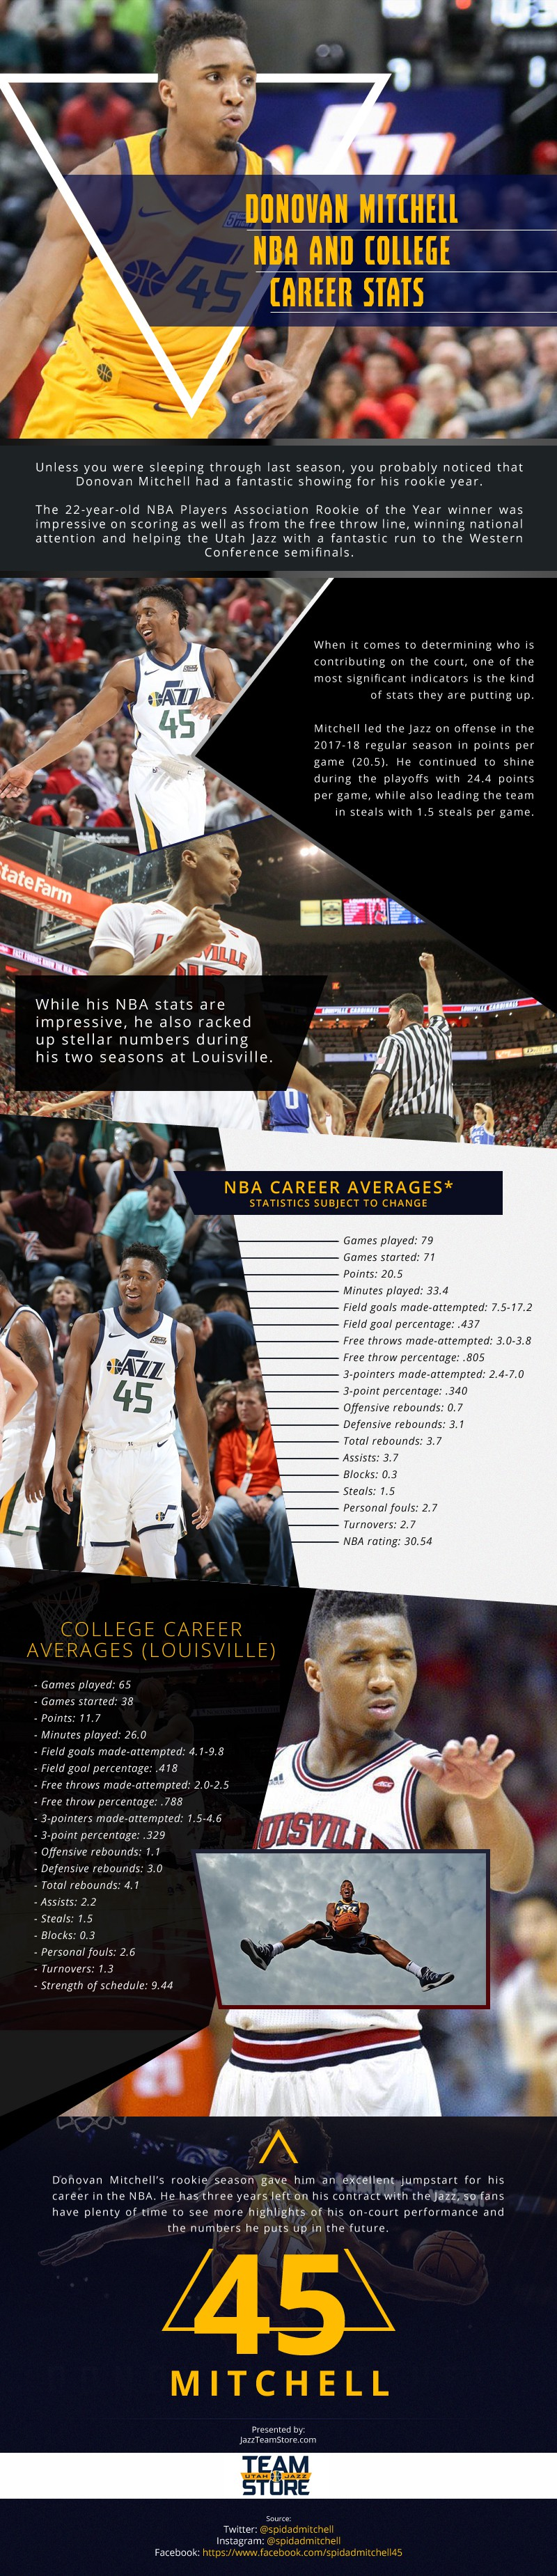 Donovan Mitchell NBA and College Career Stats